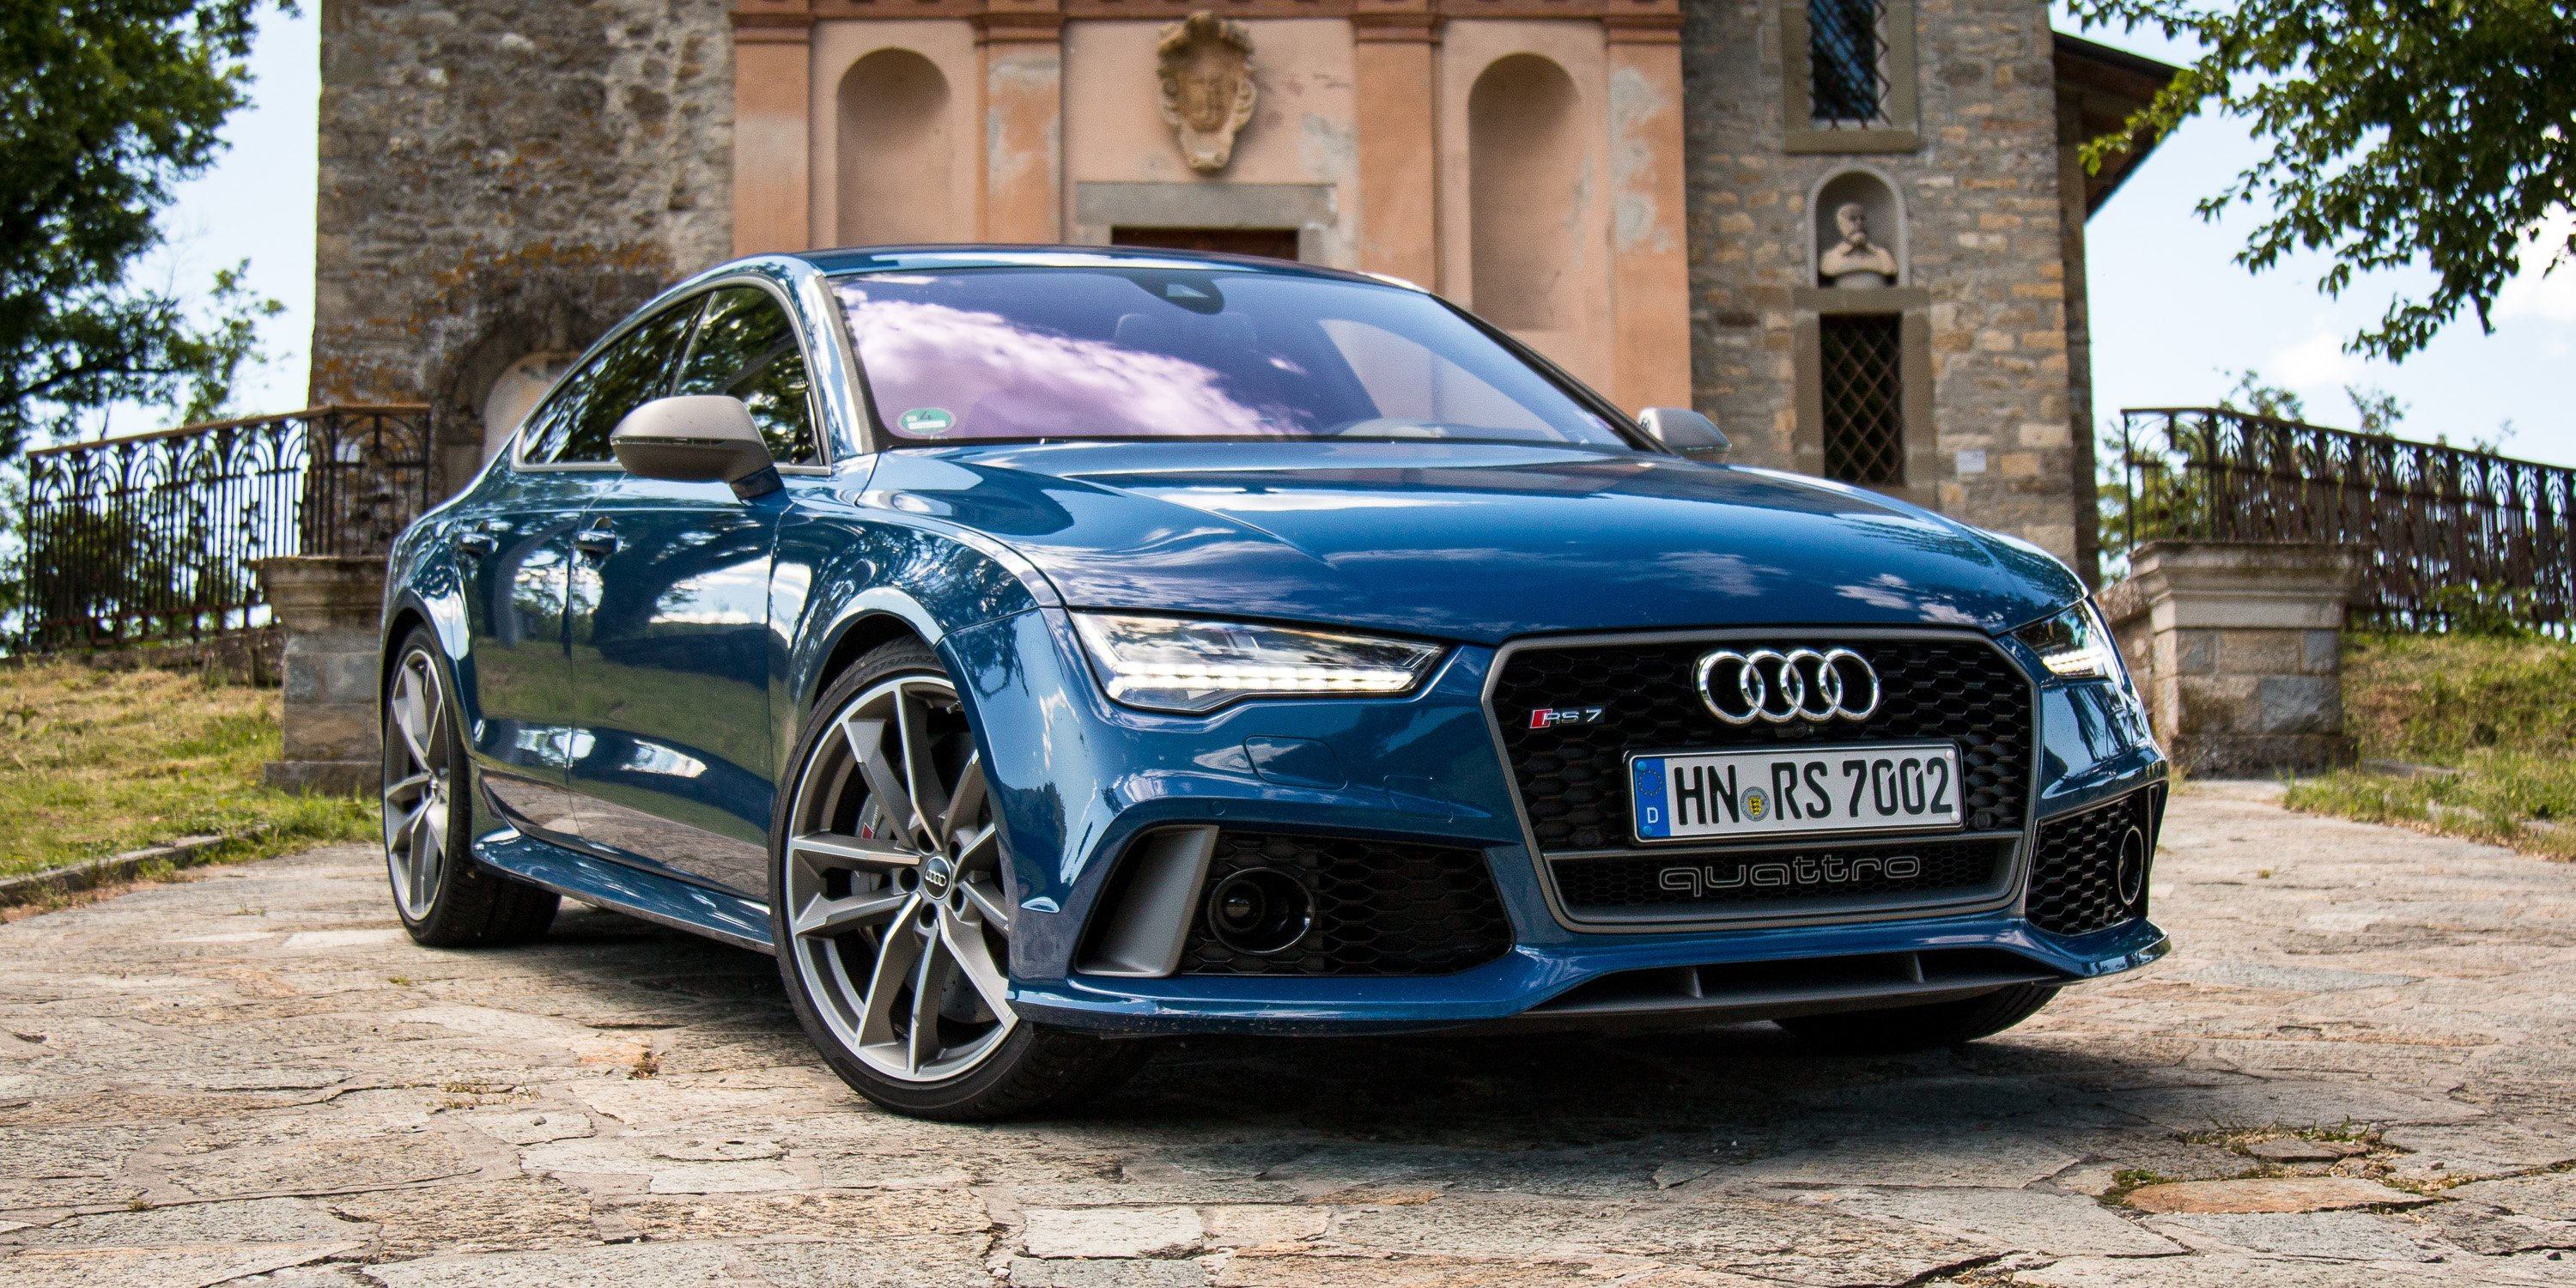 2016 Audi Rs7 Sportback Performance Review Caradvice